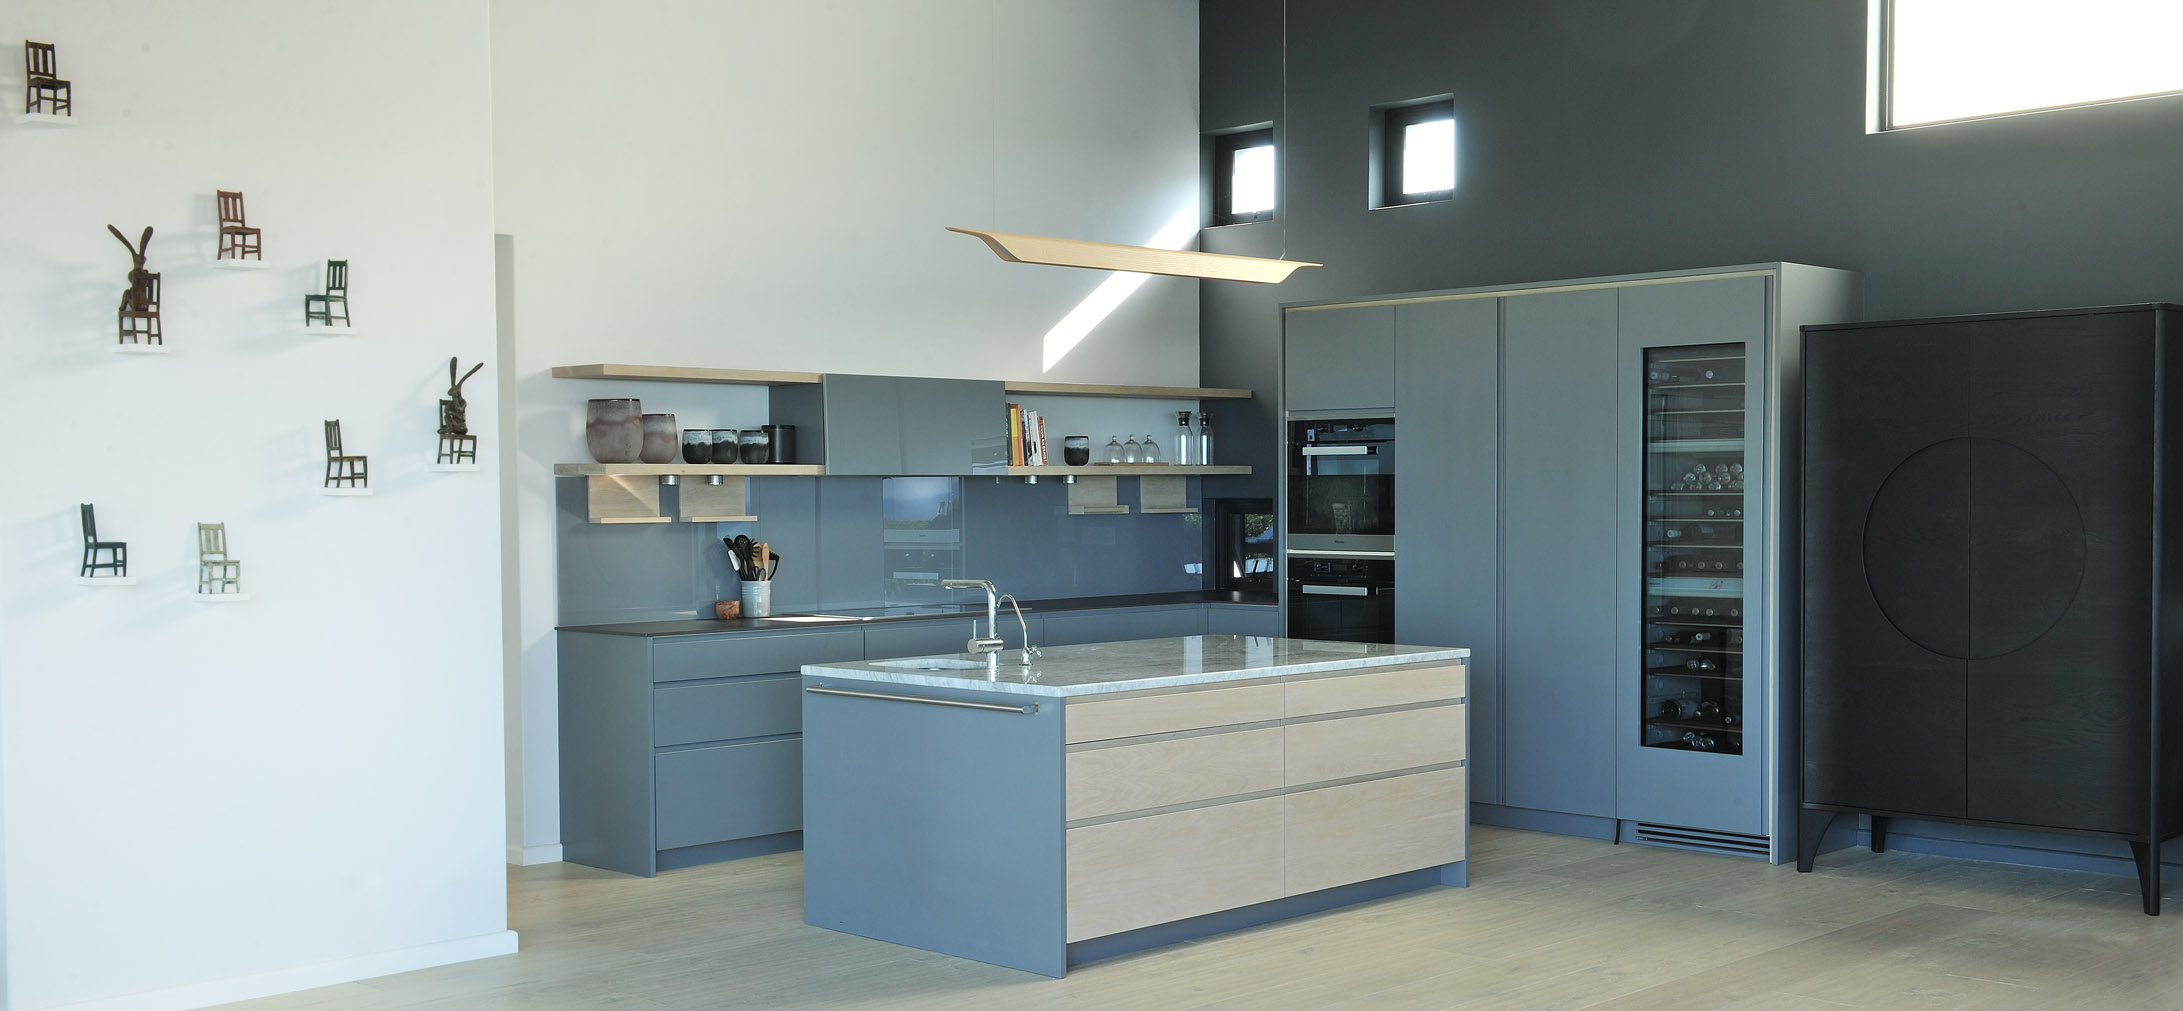 cabinet works high end kitchen and furniture manufacture rh cabinetworks co za Kitchen Designs Pretoria South Africa House Designs